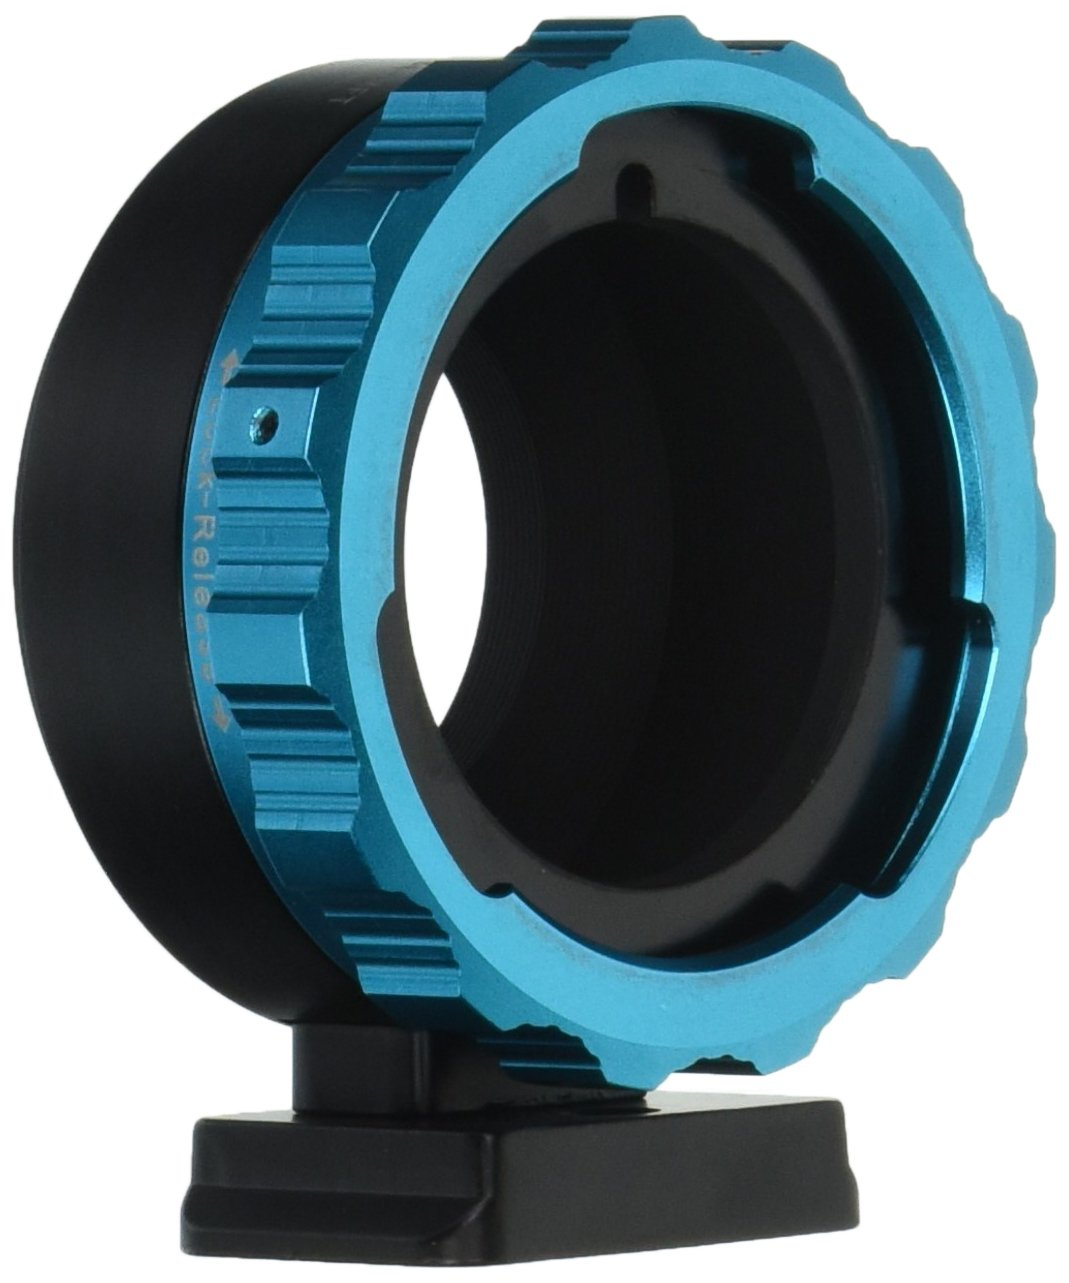 Fotodiox Pro Lens Mount Adapter - B4 (2/3'') ENG Cine Lens to Micro Four Thirds (MFT, M4/3) Mount Mirrorless Camera Body